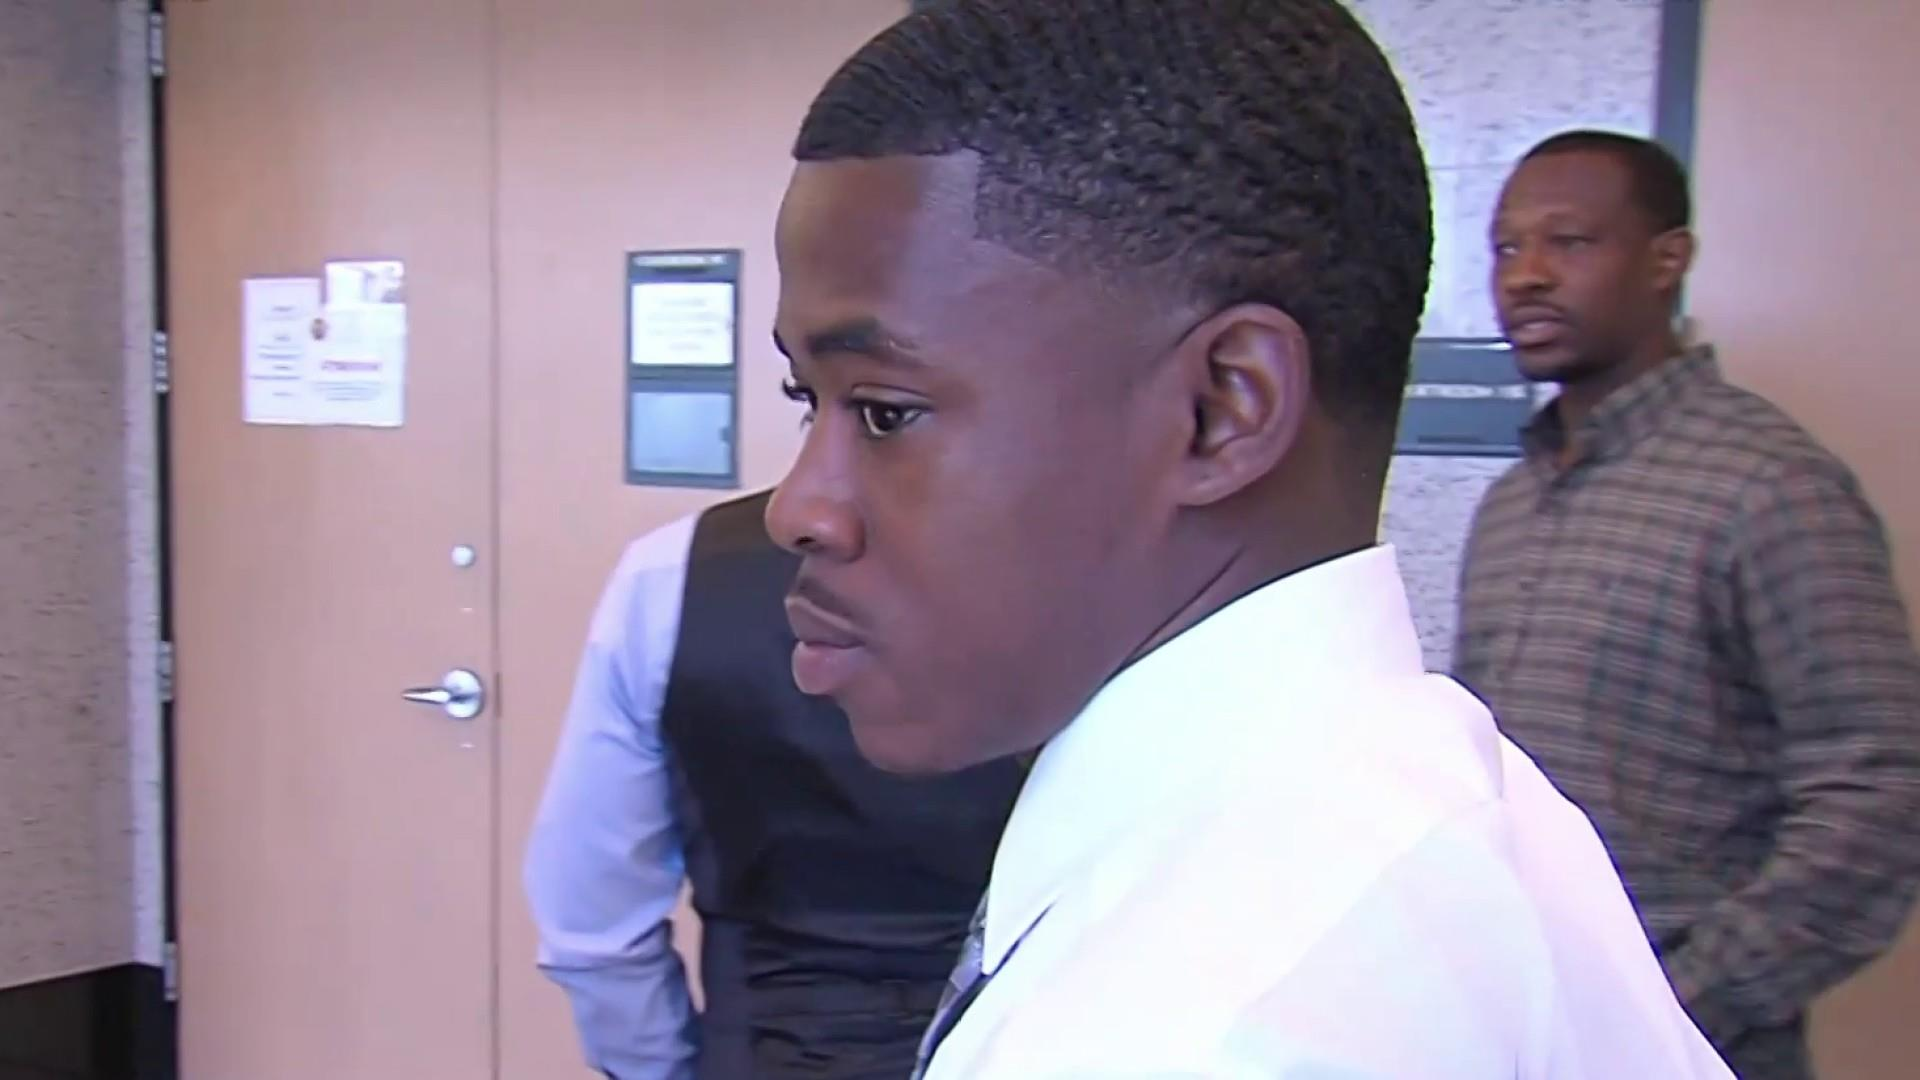 21-year-old arrested for oversleeping through first day of jury duty